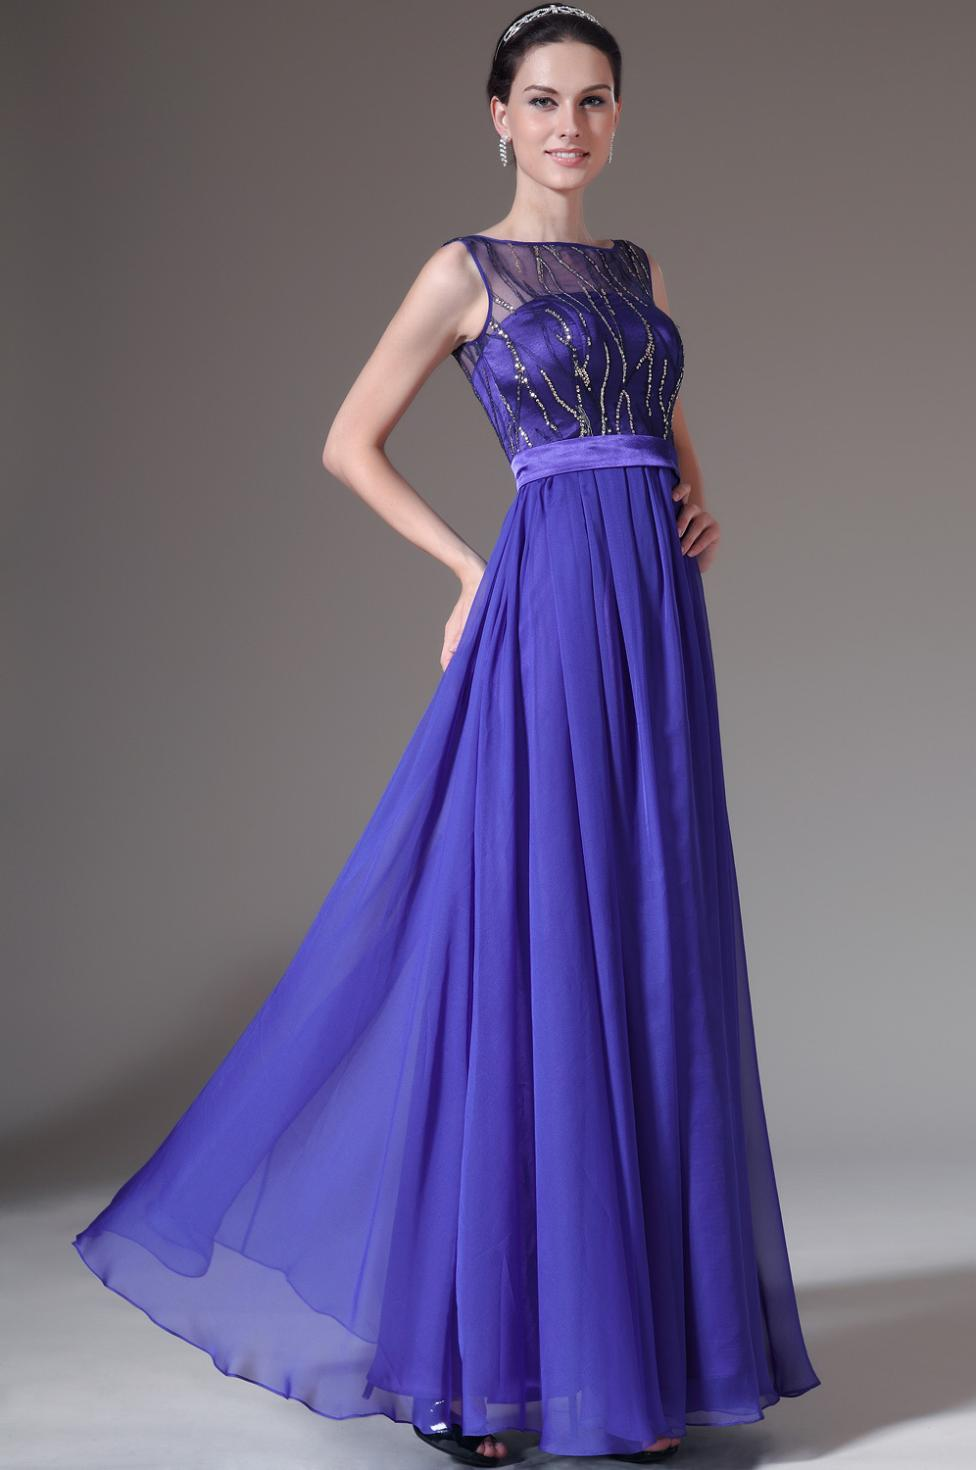 3.25 Sale Royal Blue Simple Elegant Evening Gown Gala Evening Gowns ...